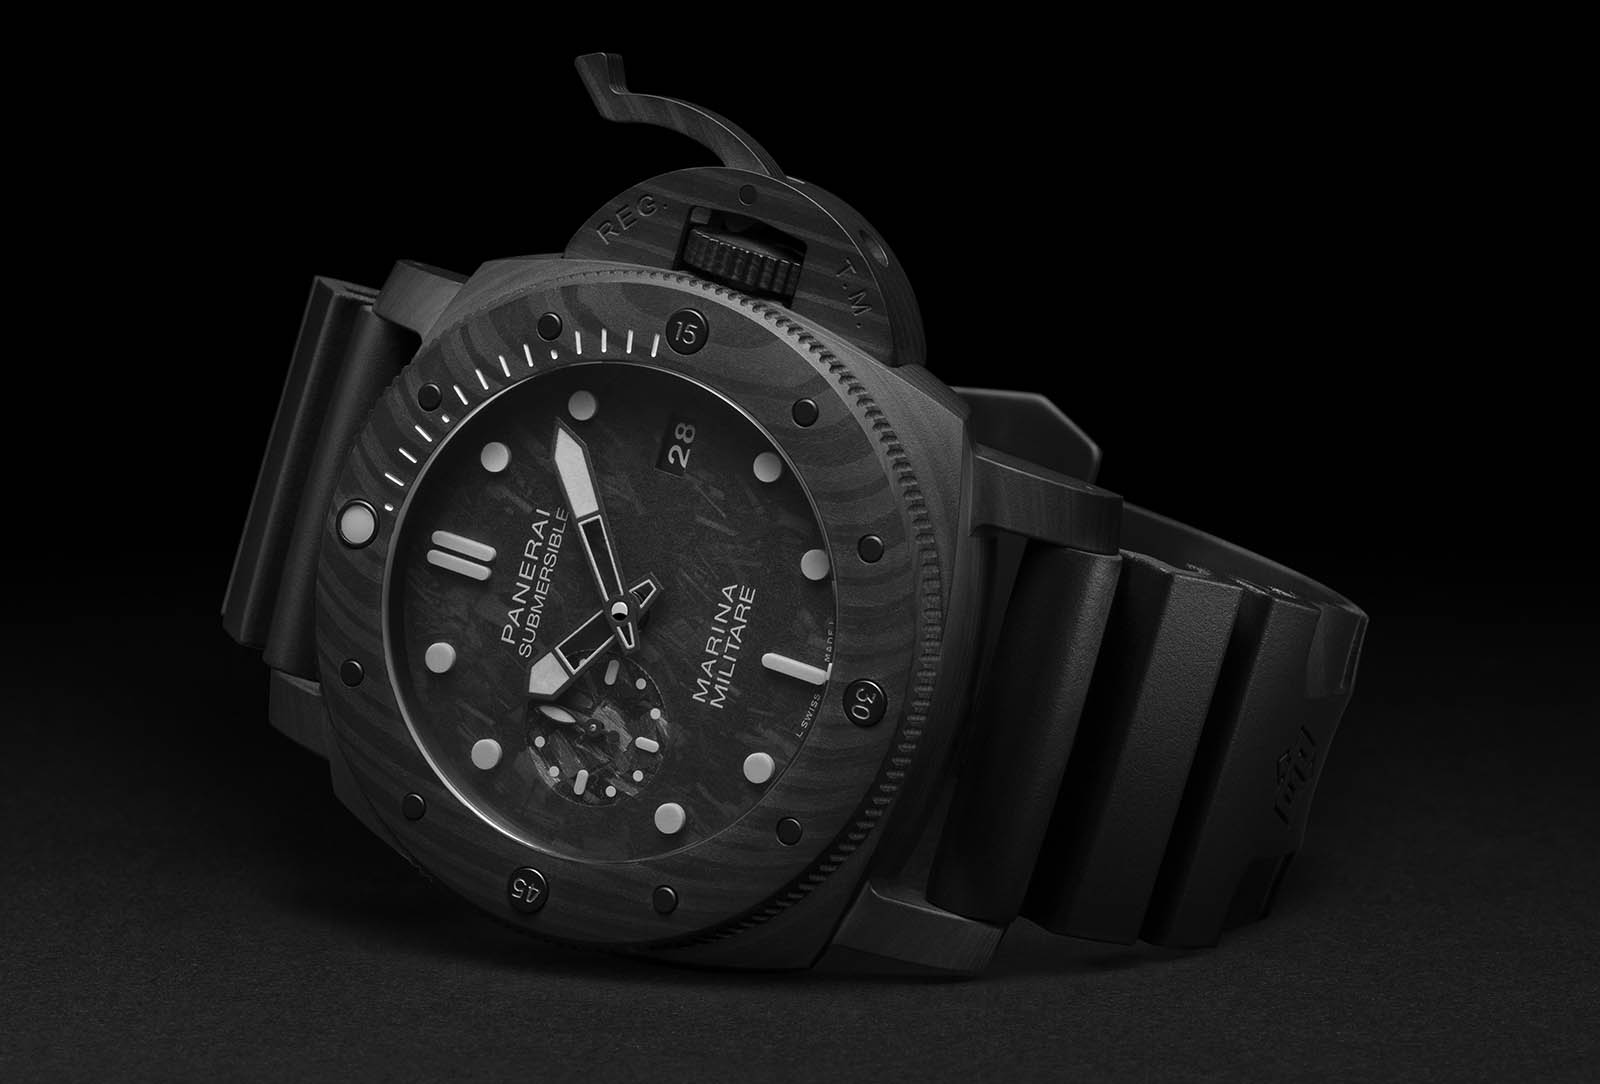 SUBMERSIBLE MARINA MILITARE CARBOTECH PAM00979 - feature